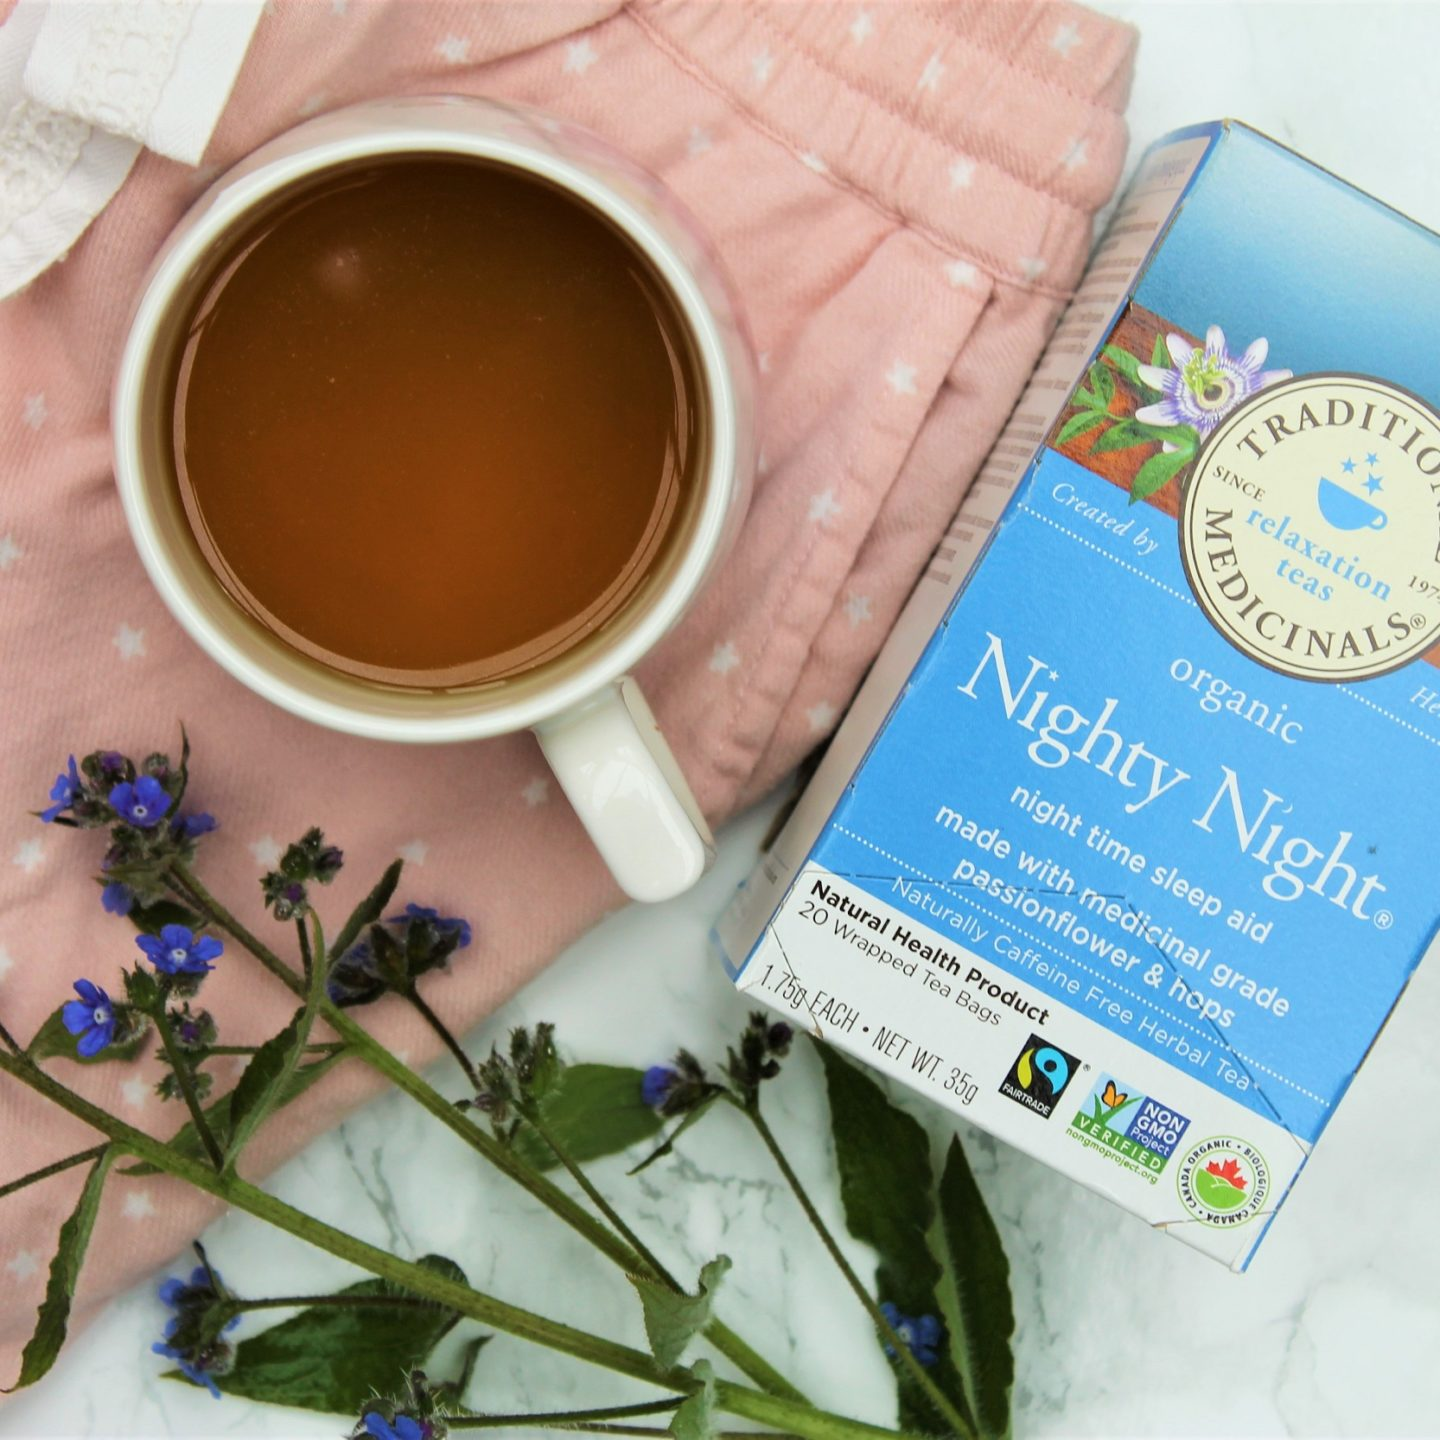 Traditional Medicinals Nighty Night Tea Review